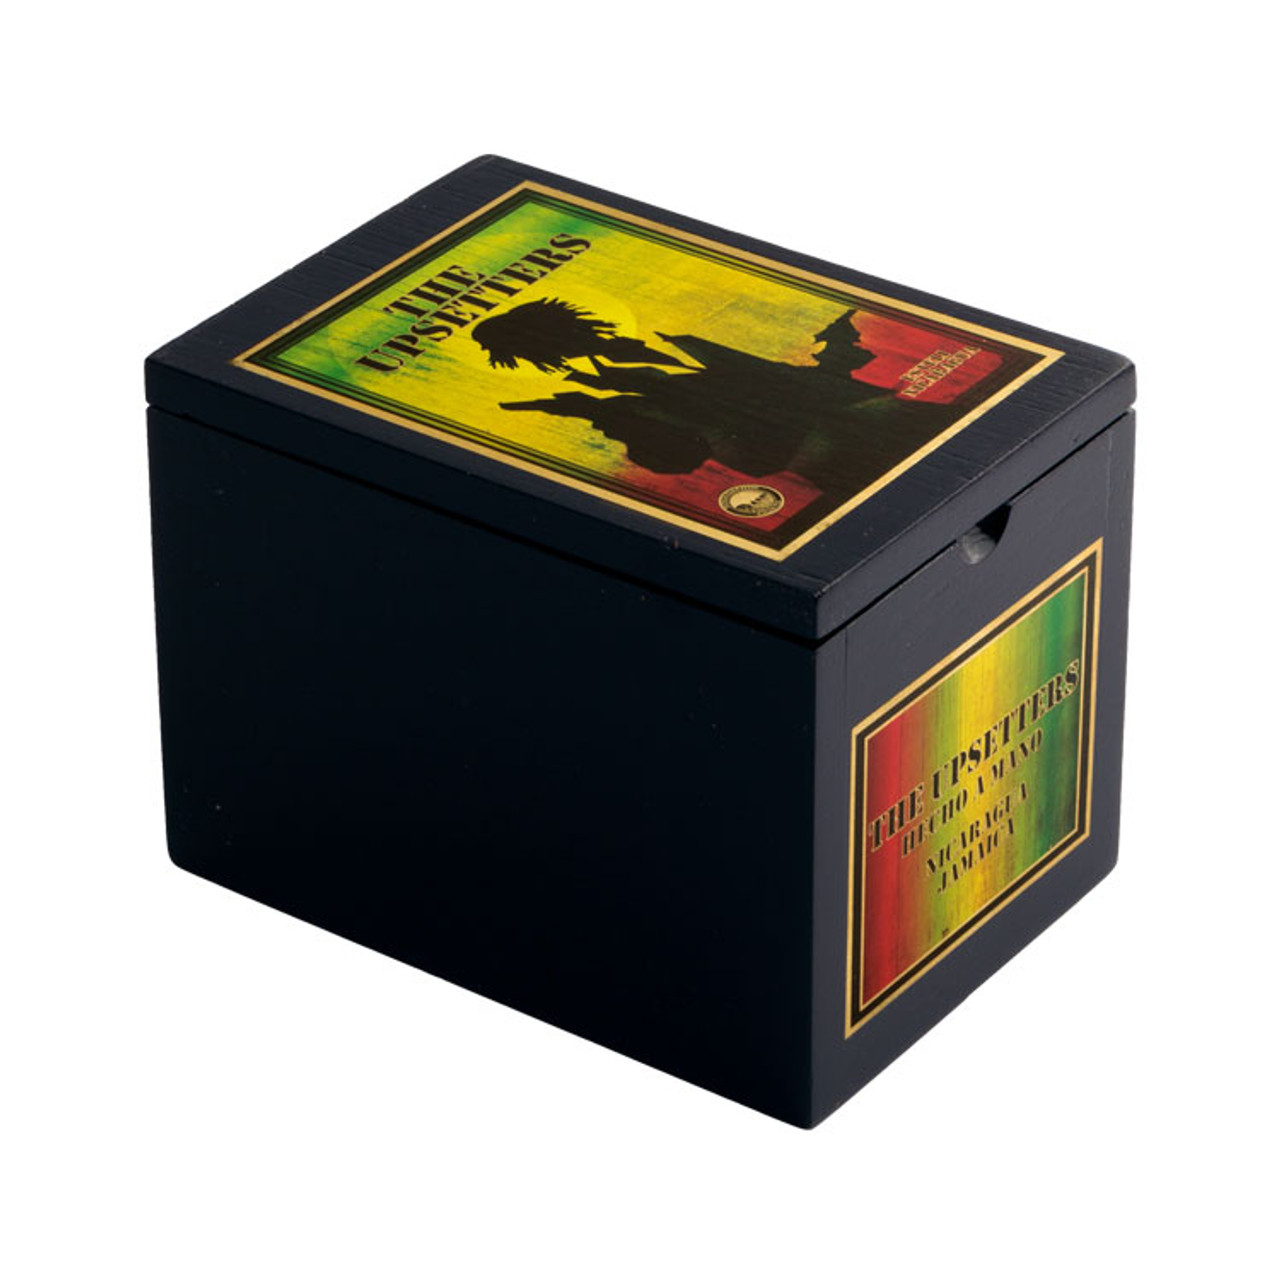 Foundation The Upsetters Small Axe Cigars - 4.5 x 40 (Box of 30)